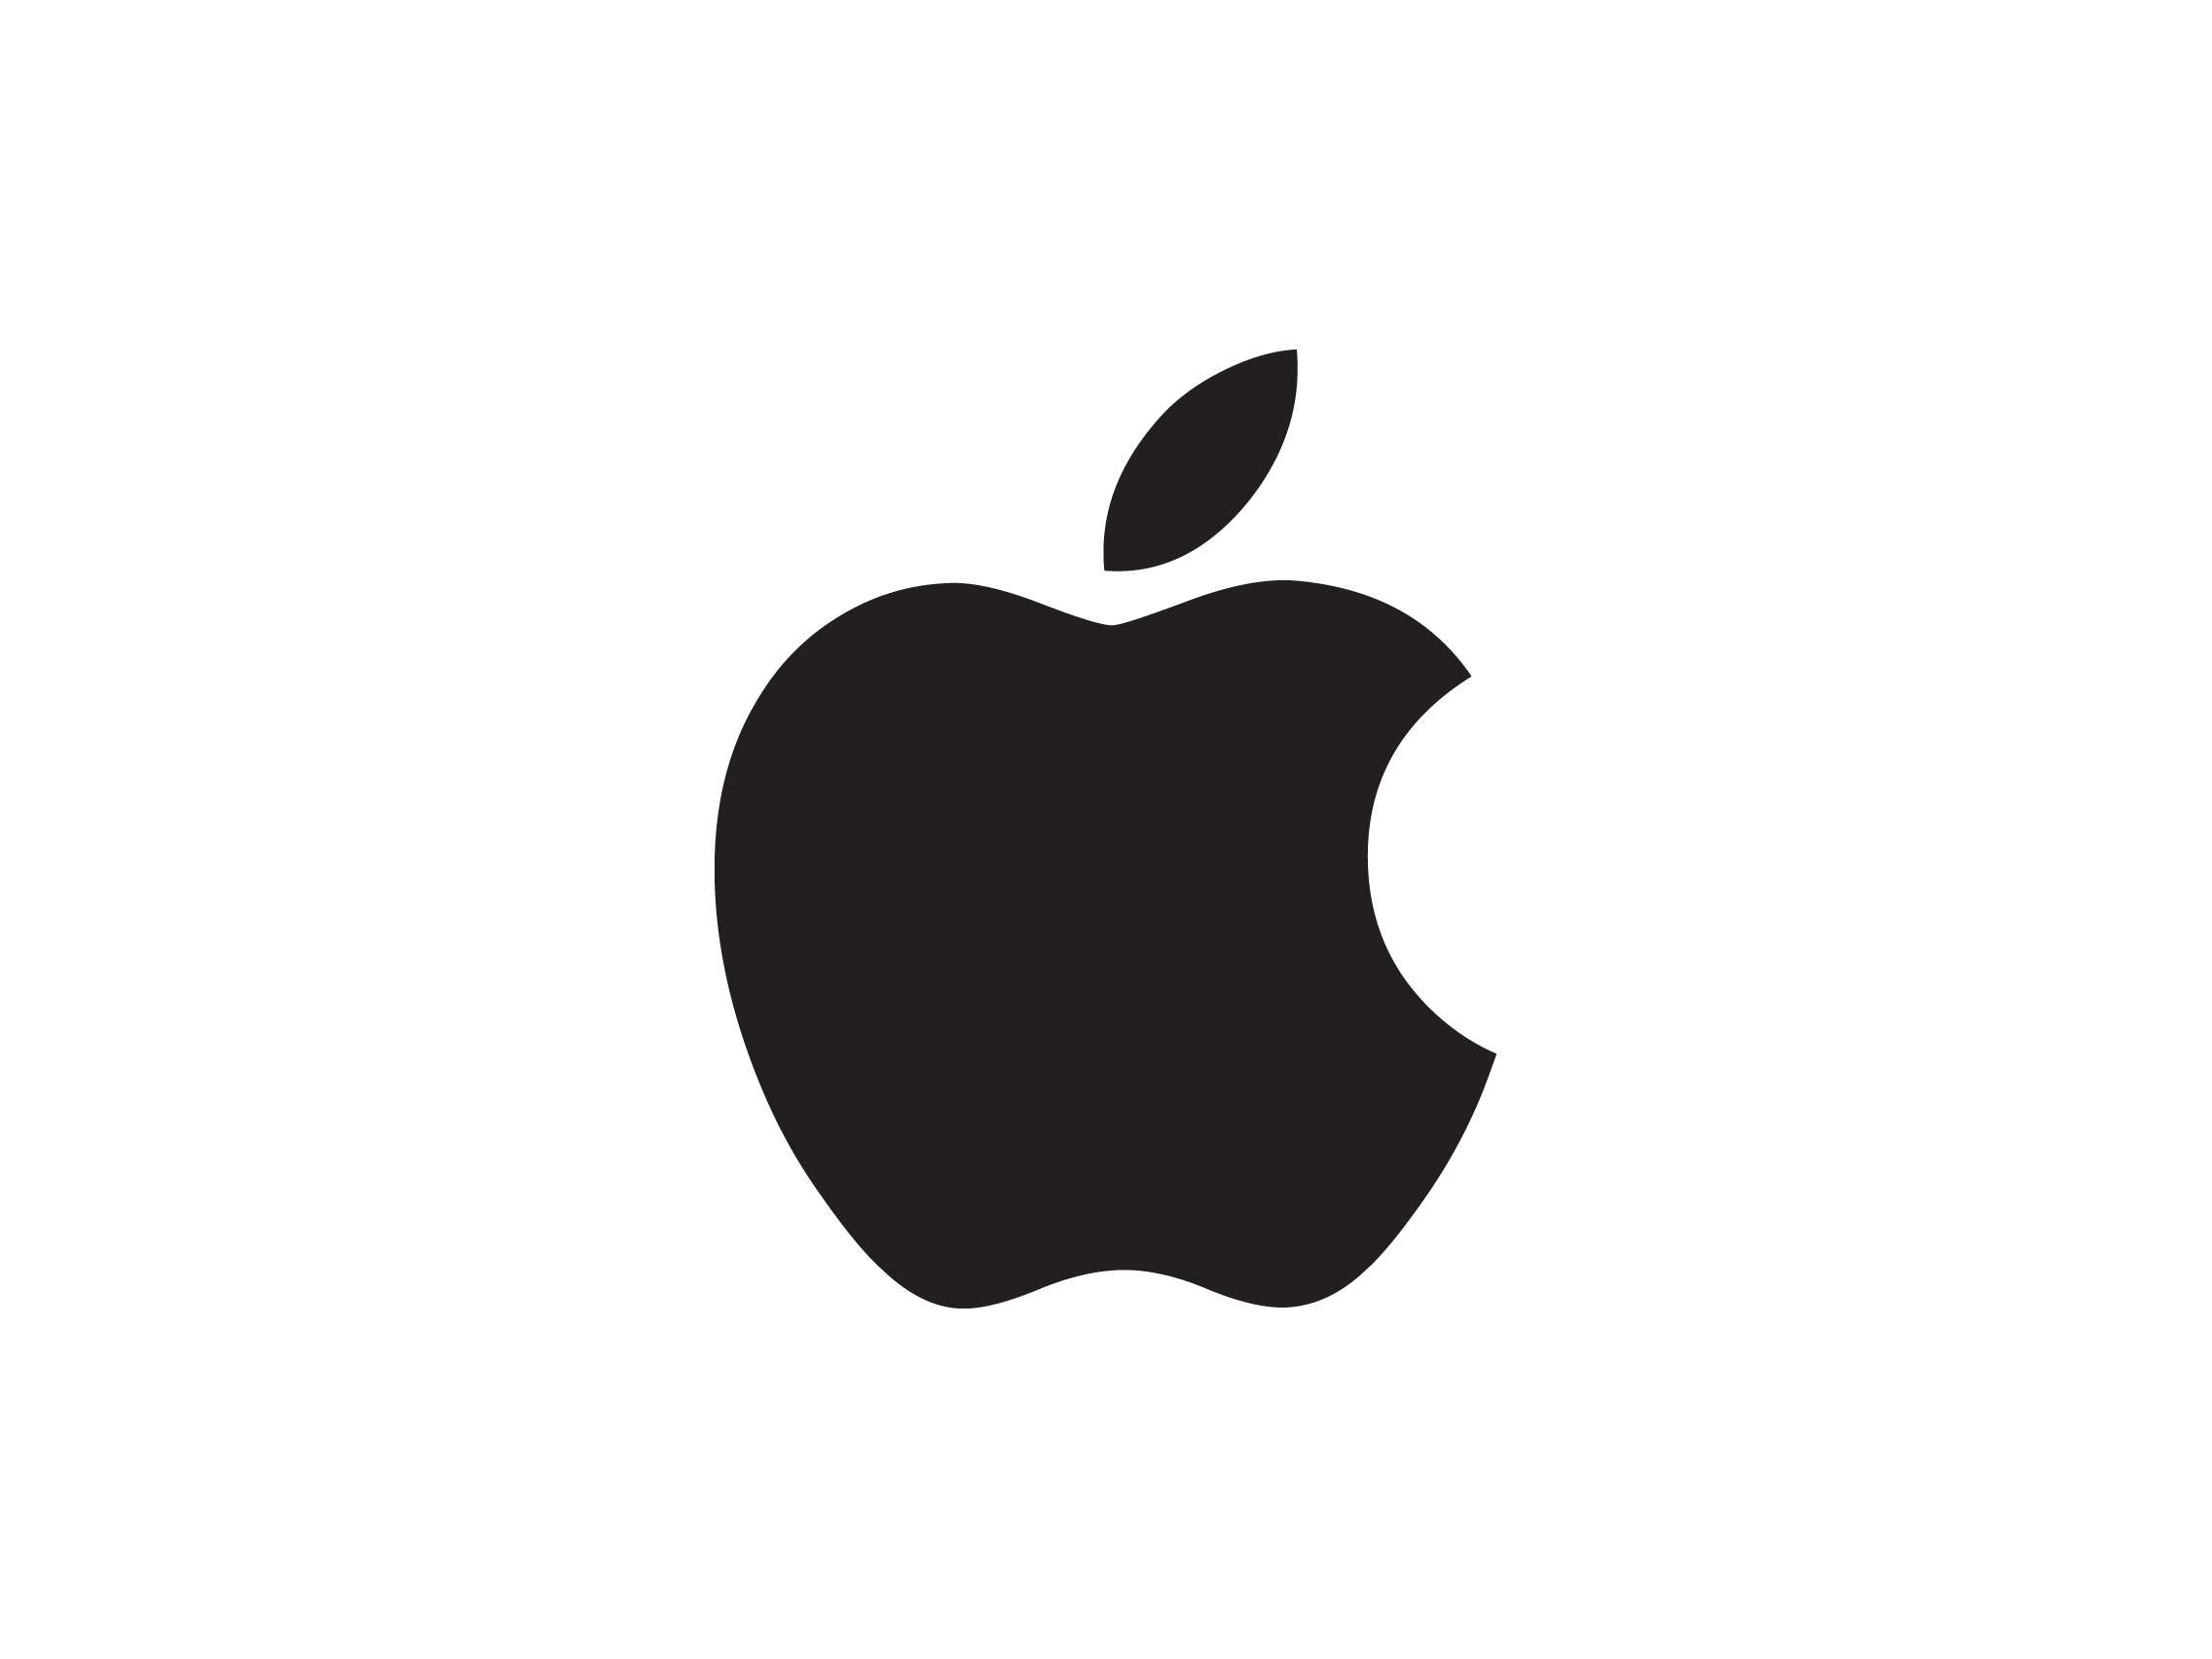 iPhone 6 Plus Macintosh AppleCare Technical Support iPad.